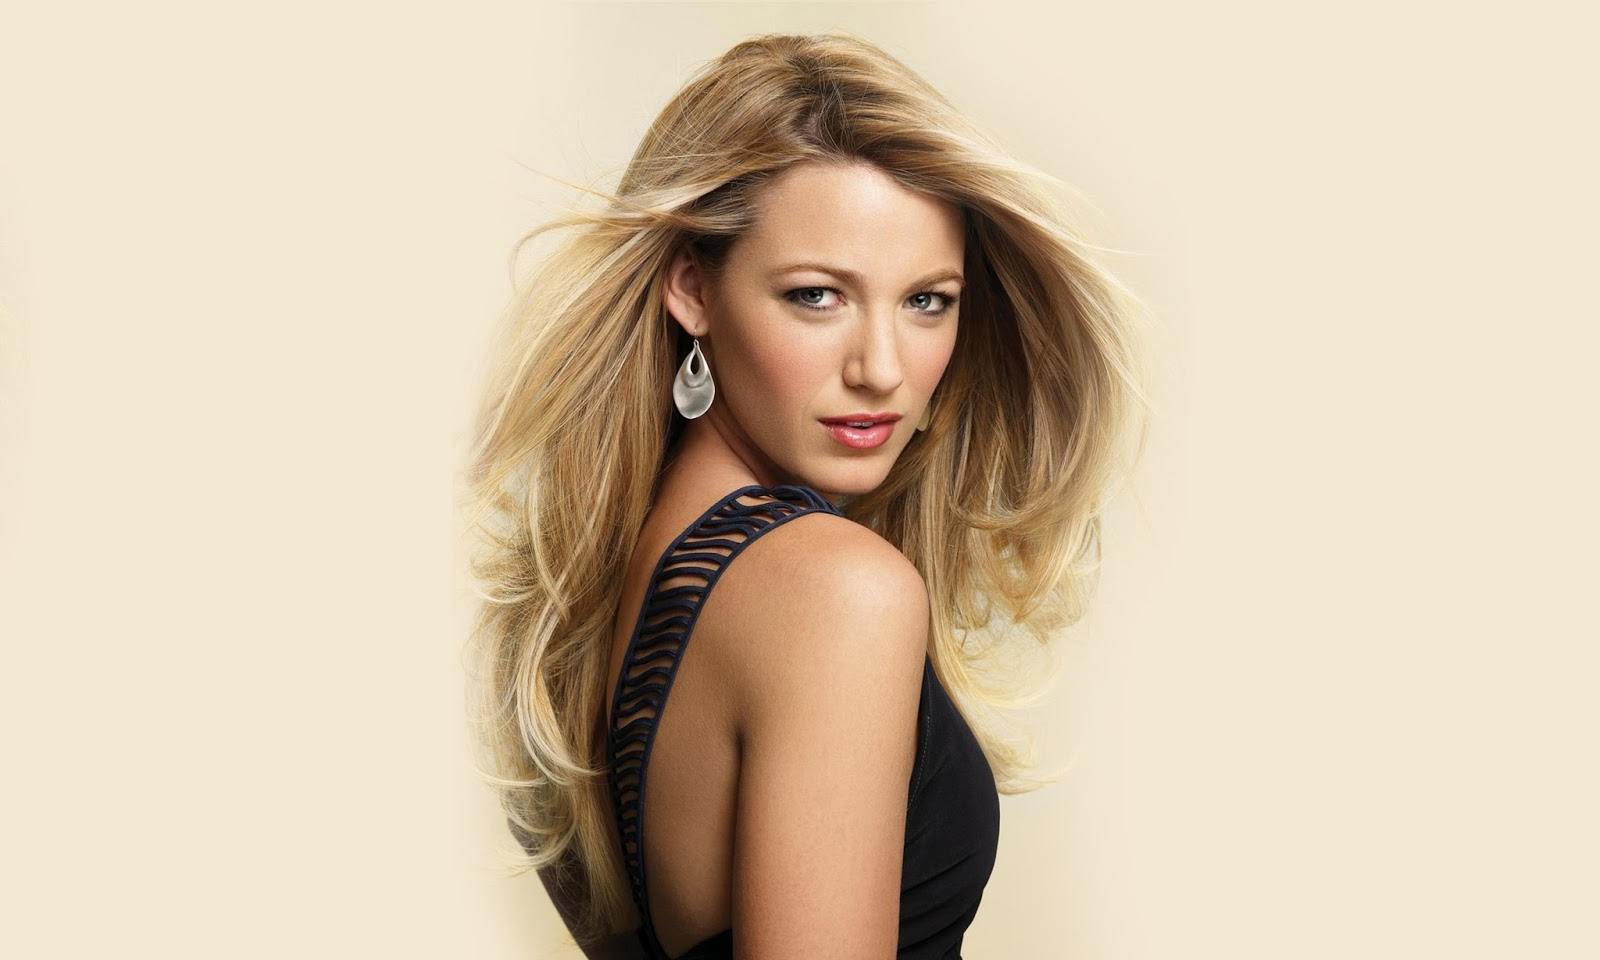 blake lively hd wallpapers | hd wallpapers (high definition) | free